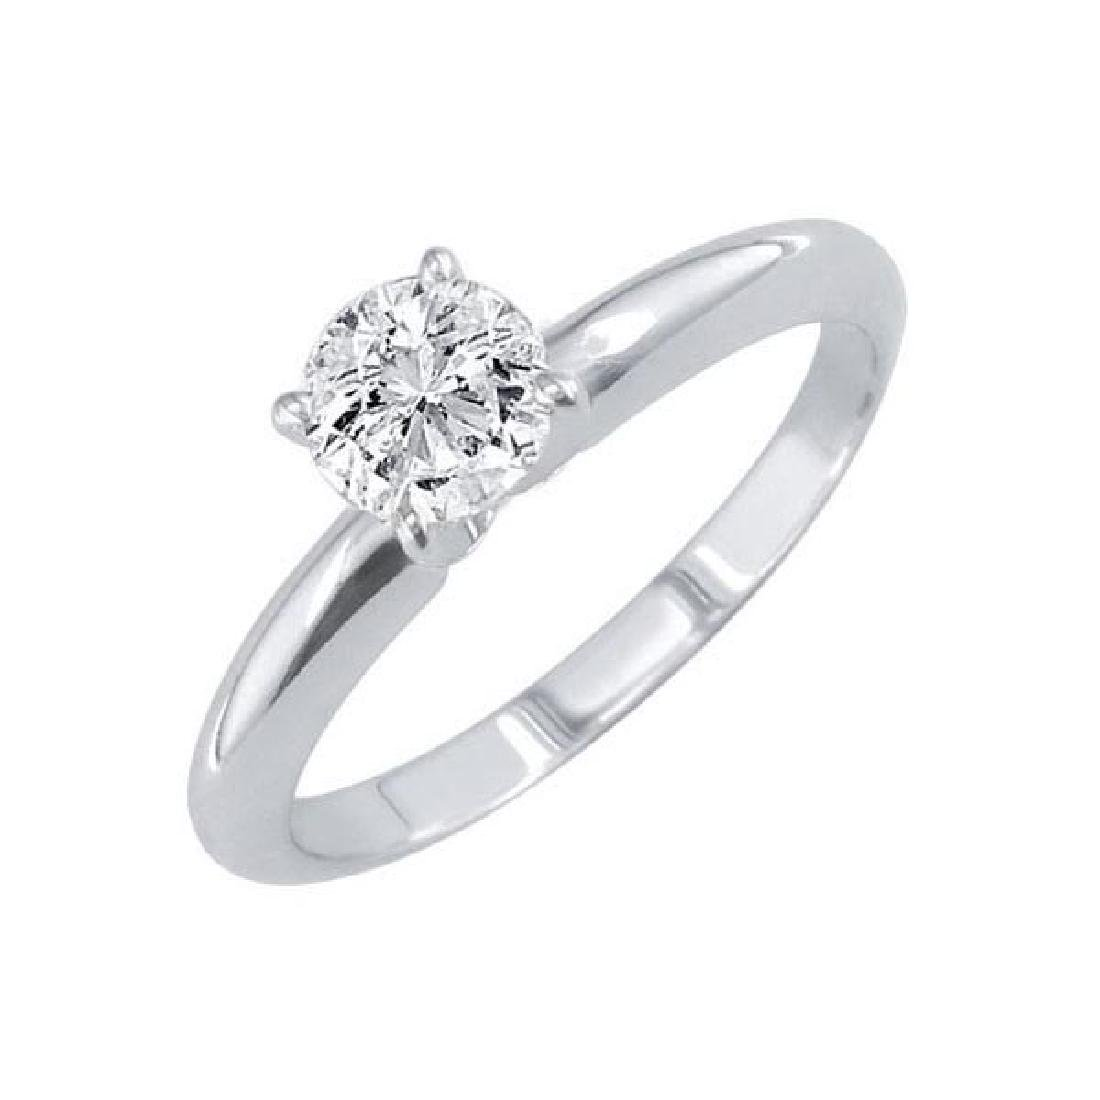 Certified 1.01 CTW Round Diamond Solitaire 14k Ring K/S